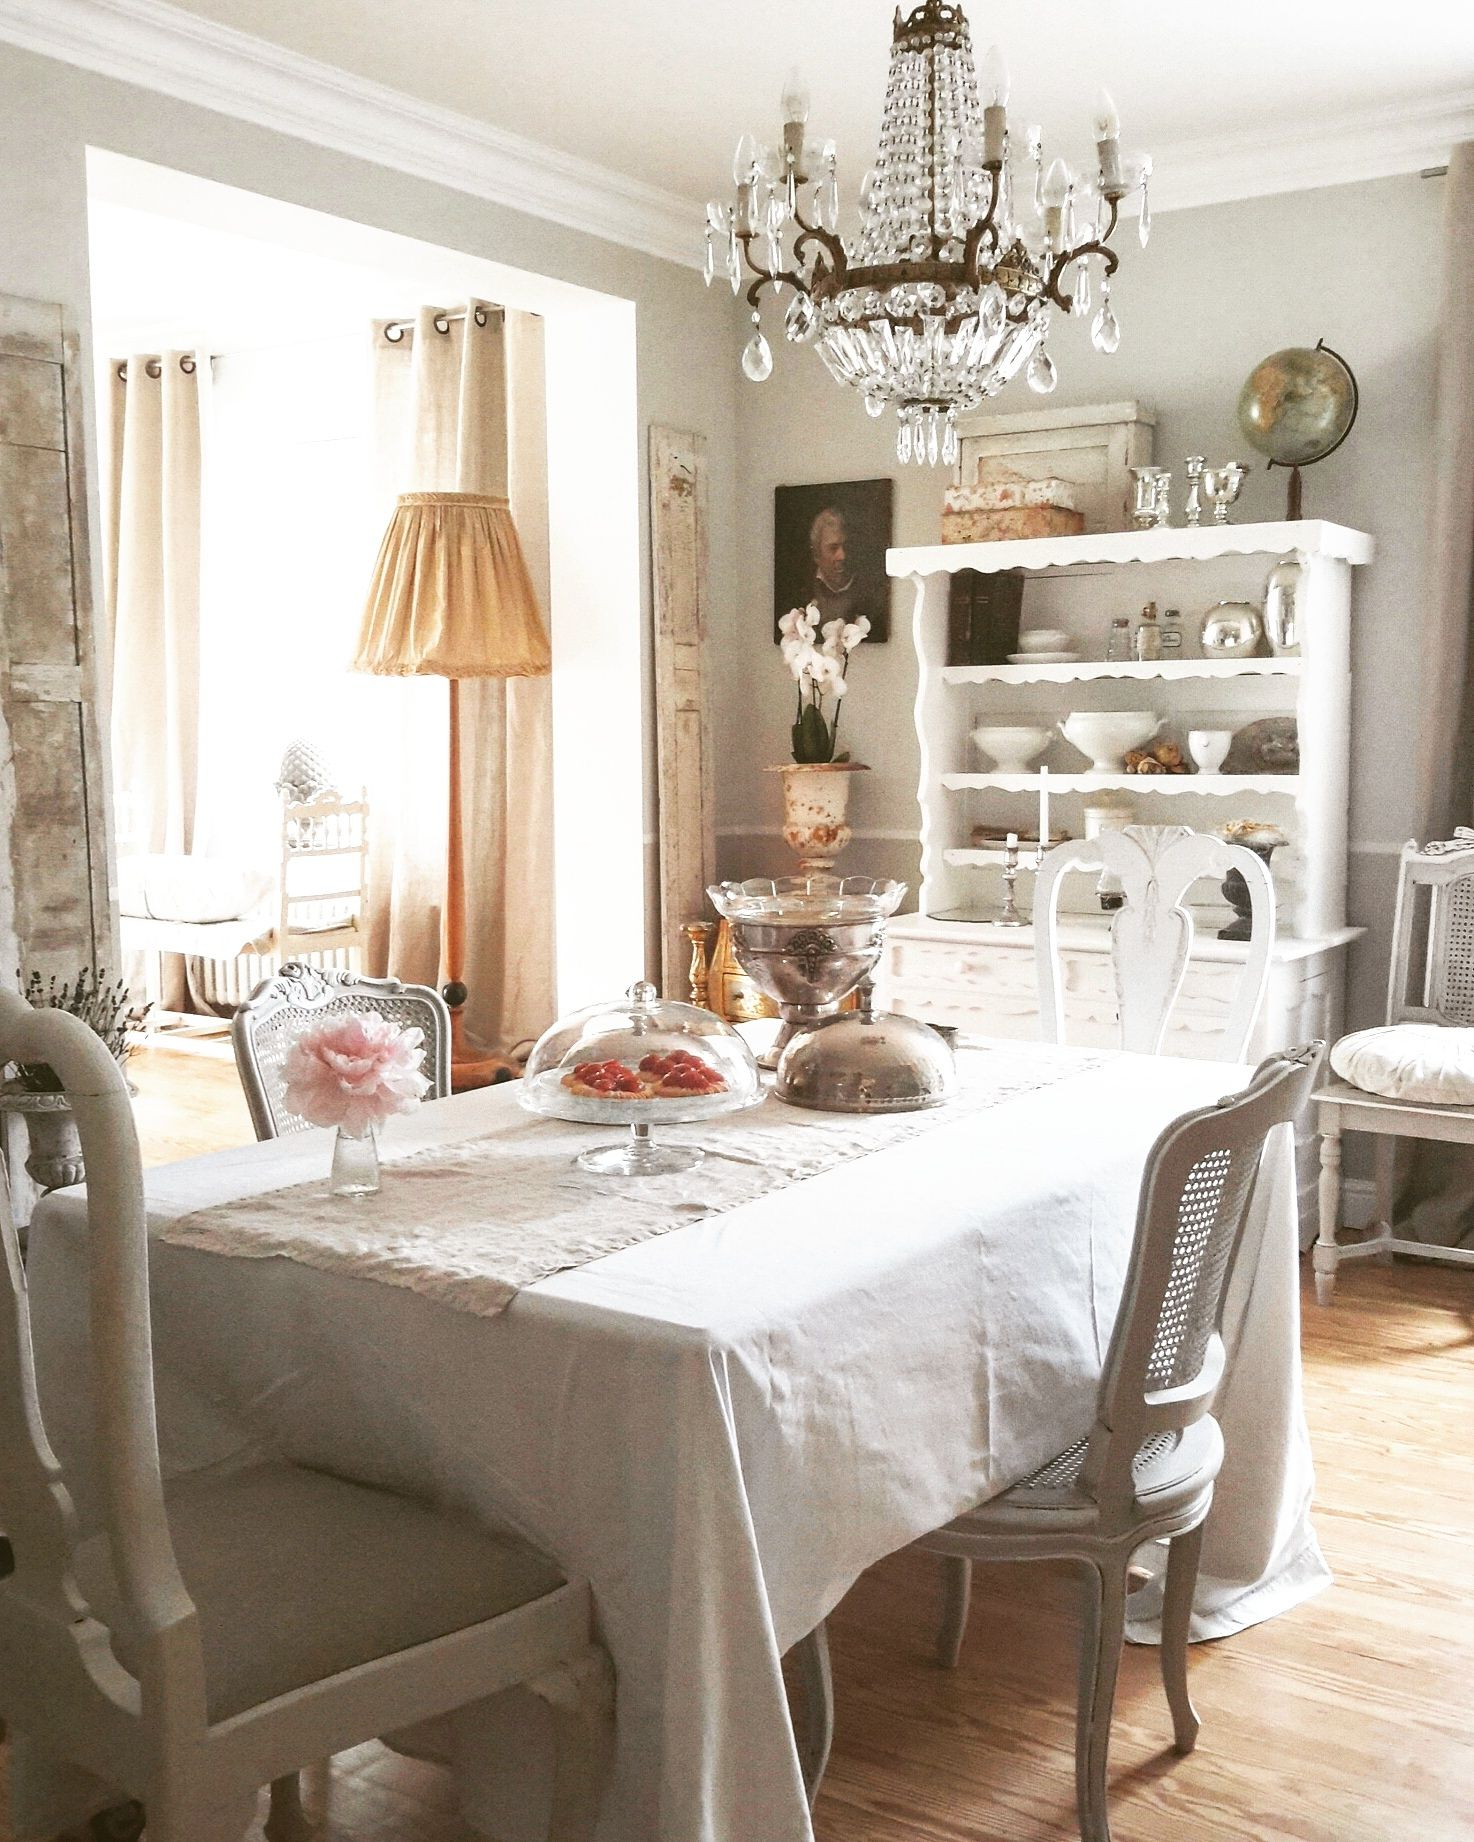 at home dining room brocante charmante white and vintage pinterest. Black Bedroom Furniture Sets. Home Design Ideas